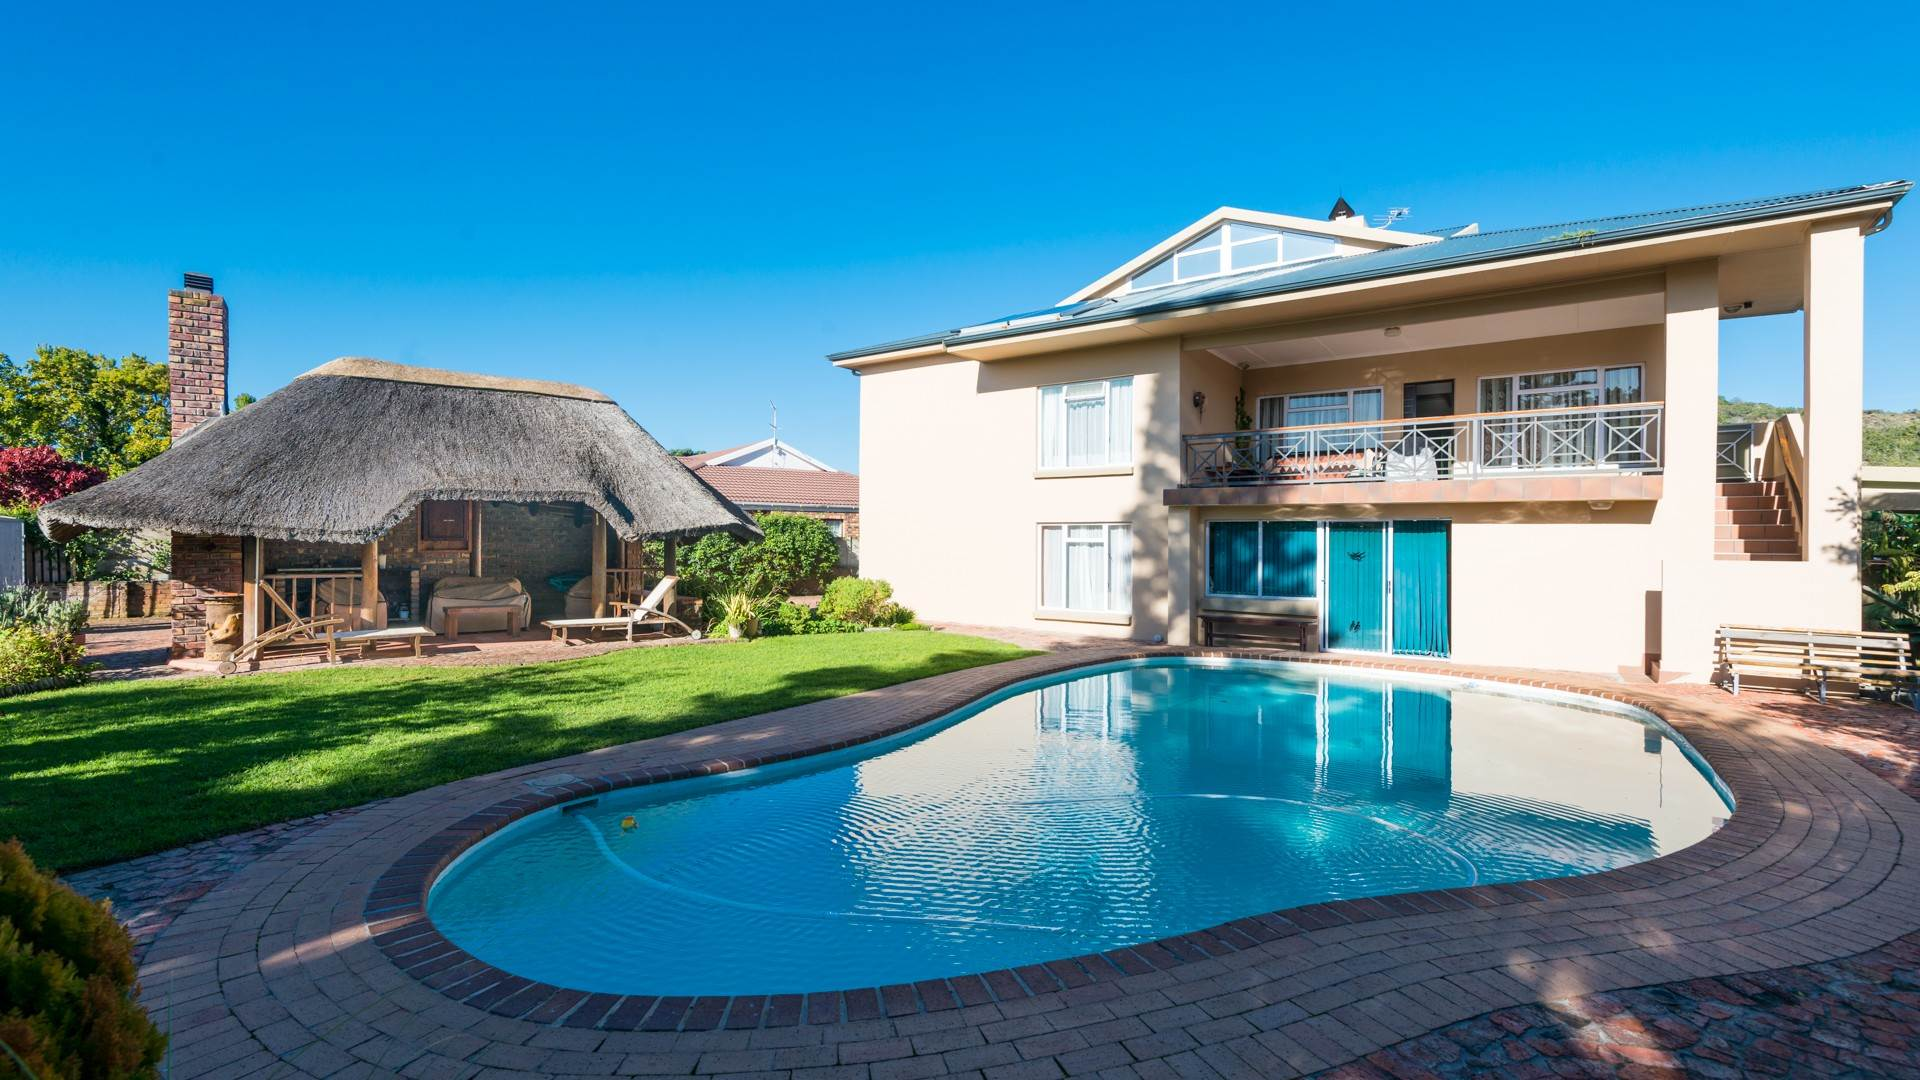 6 BedroomHouse For Sale In The Island